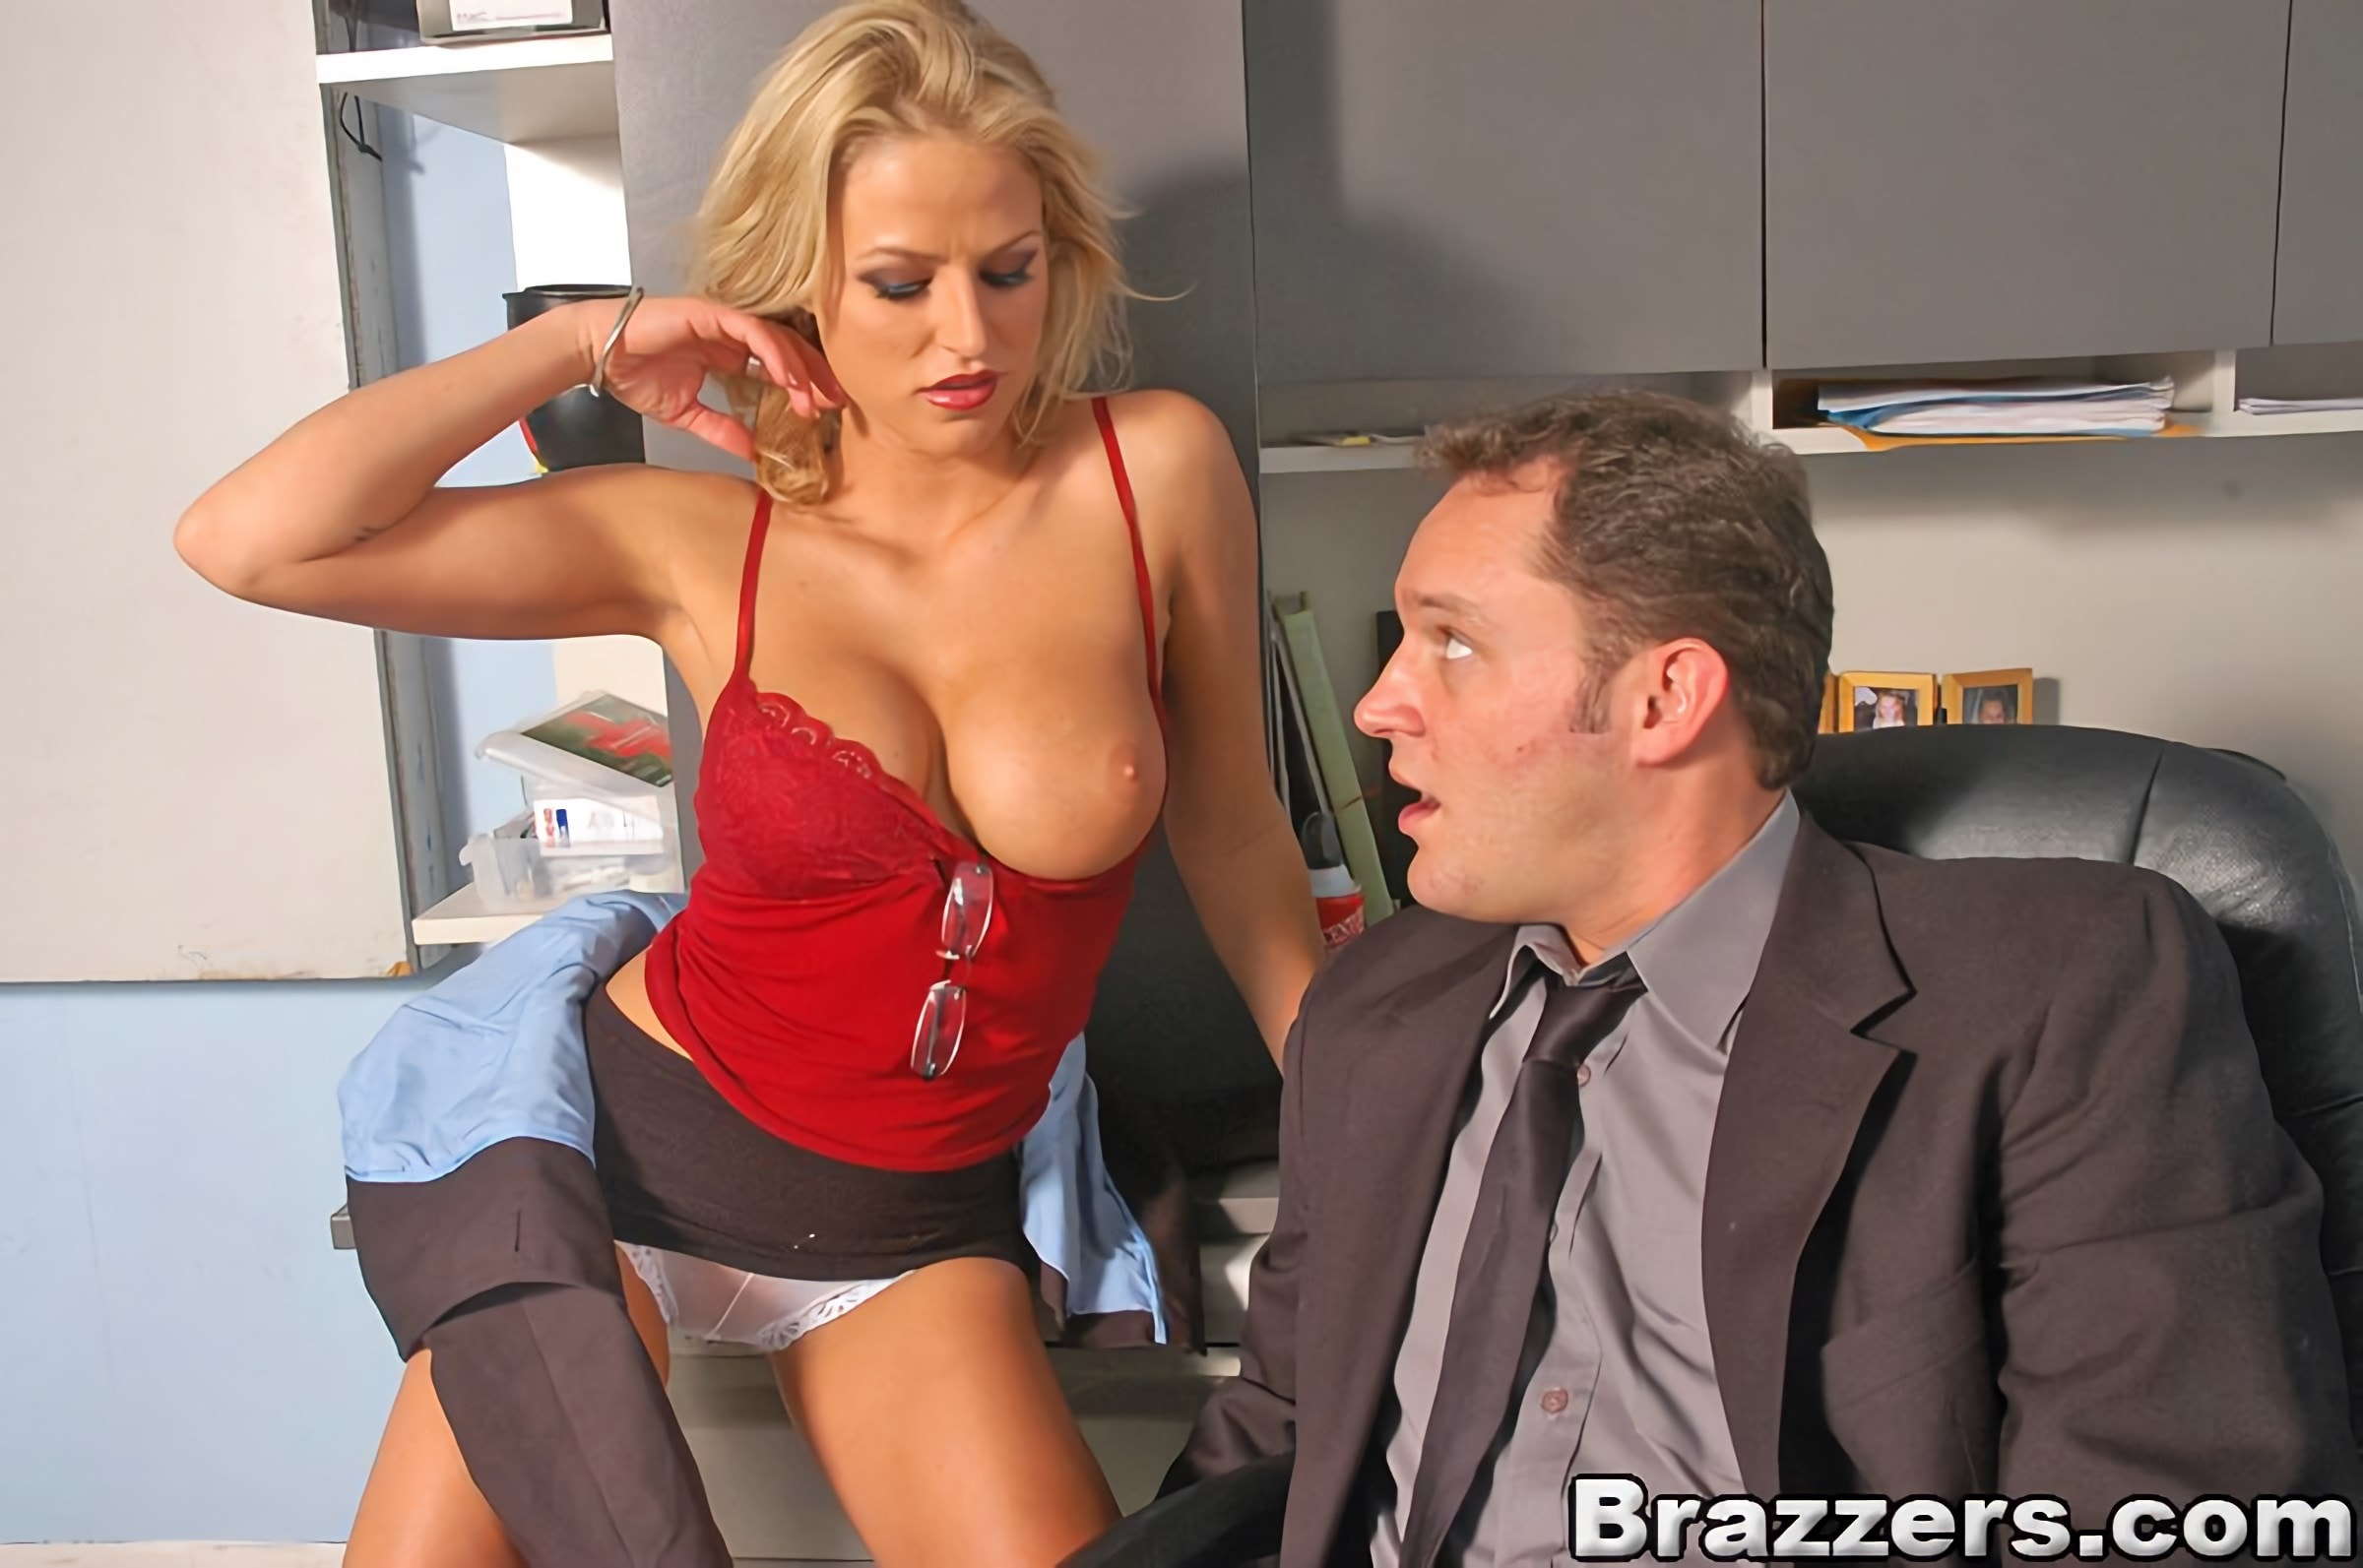 Brazzers 'Raising the stakes' starring Brooke Belle (photo 6)